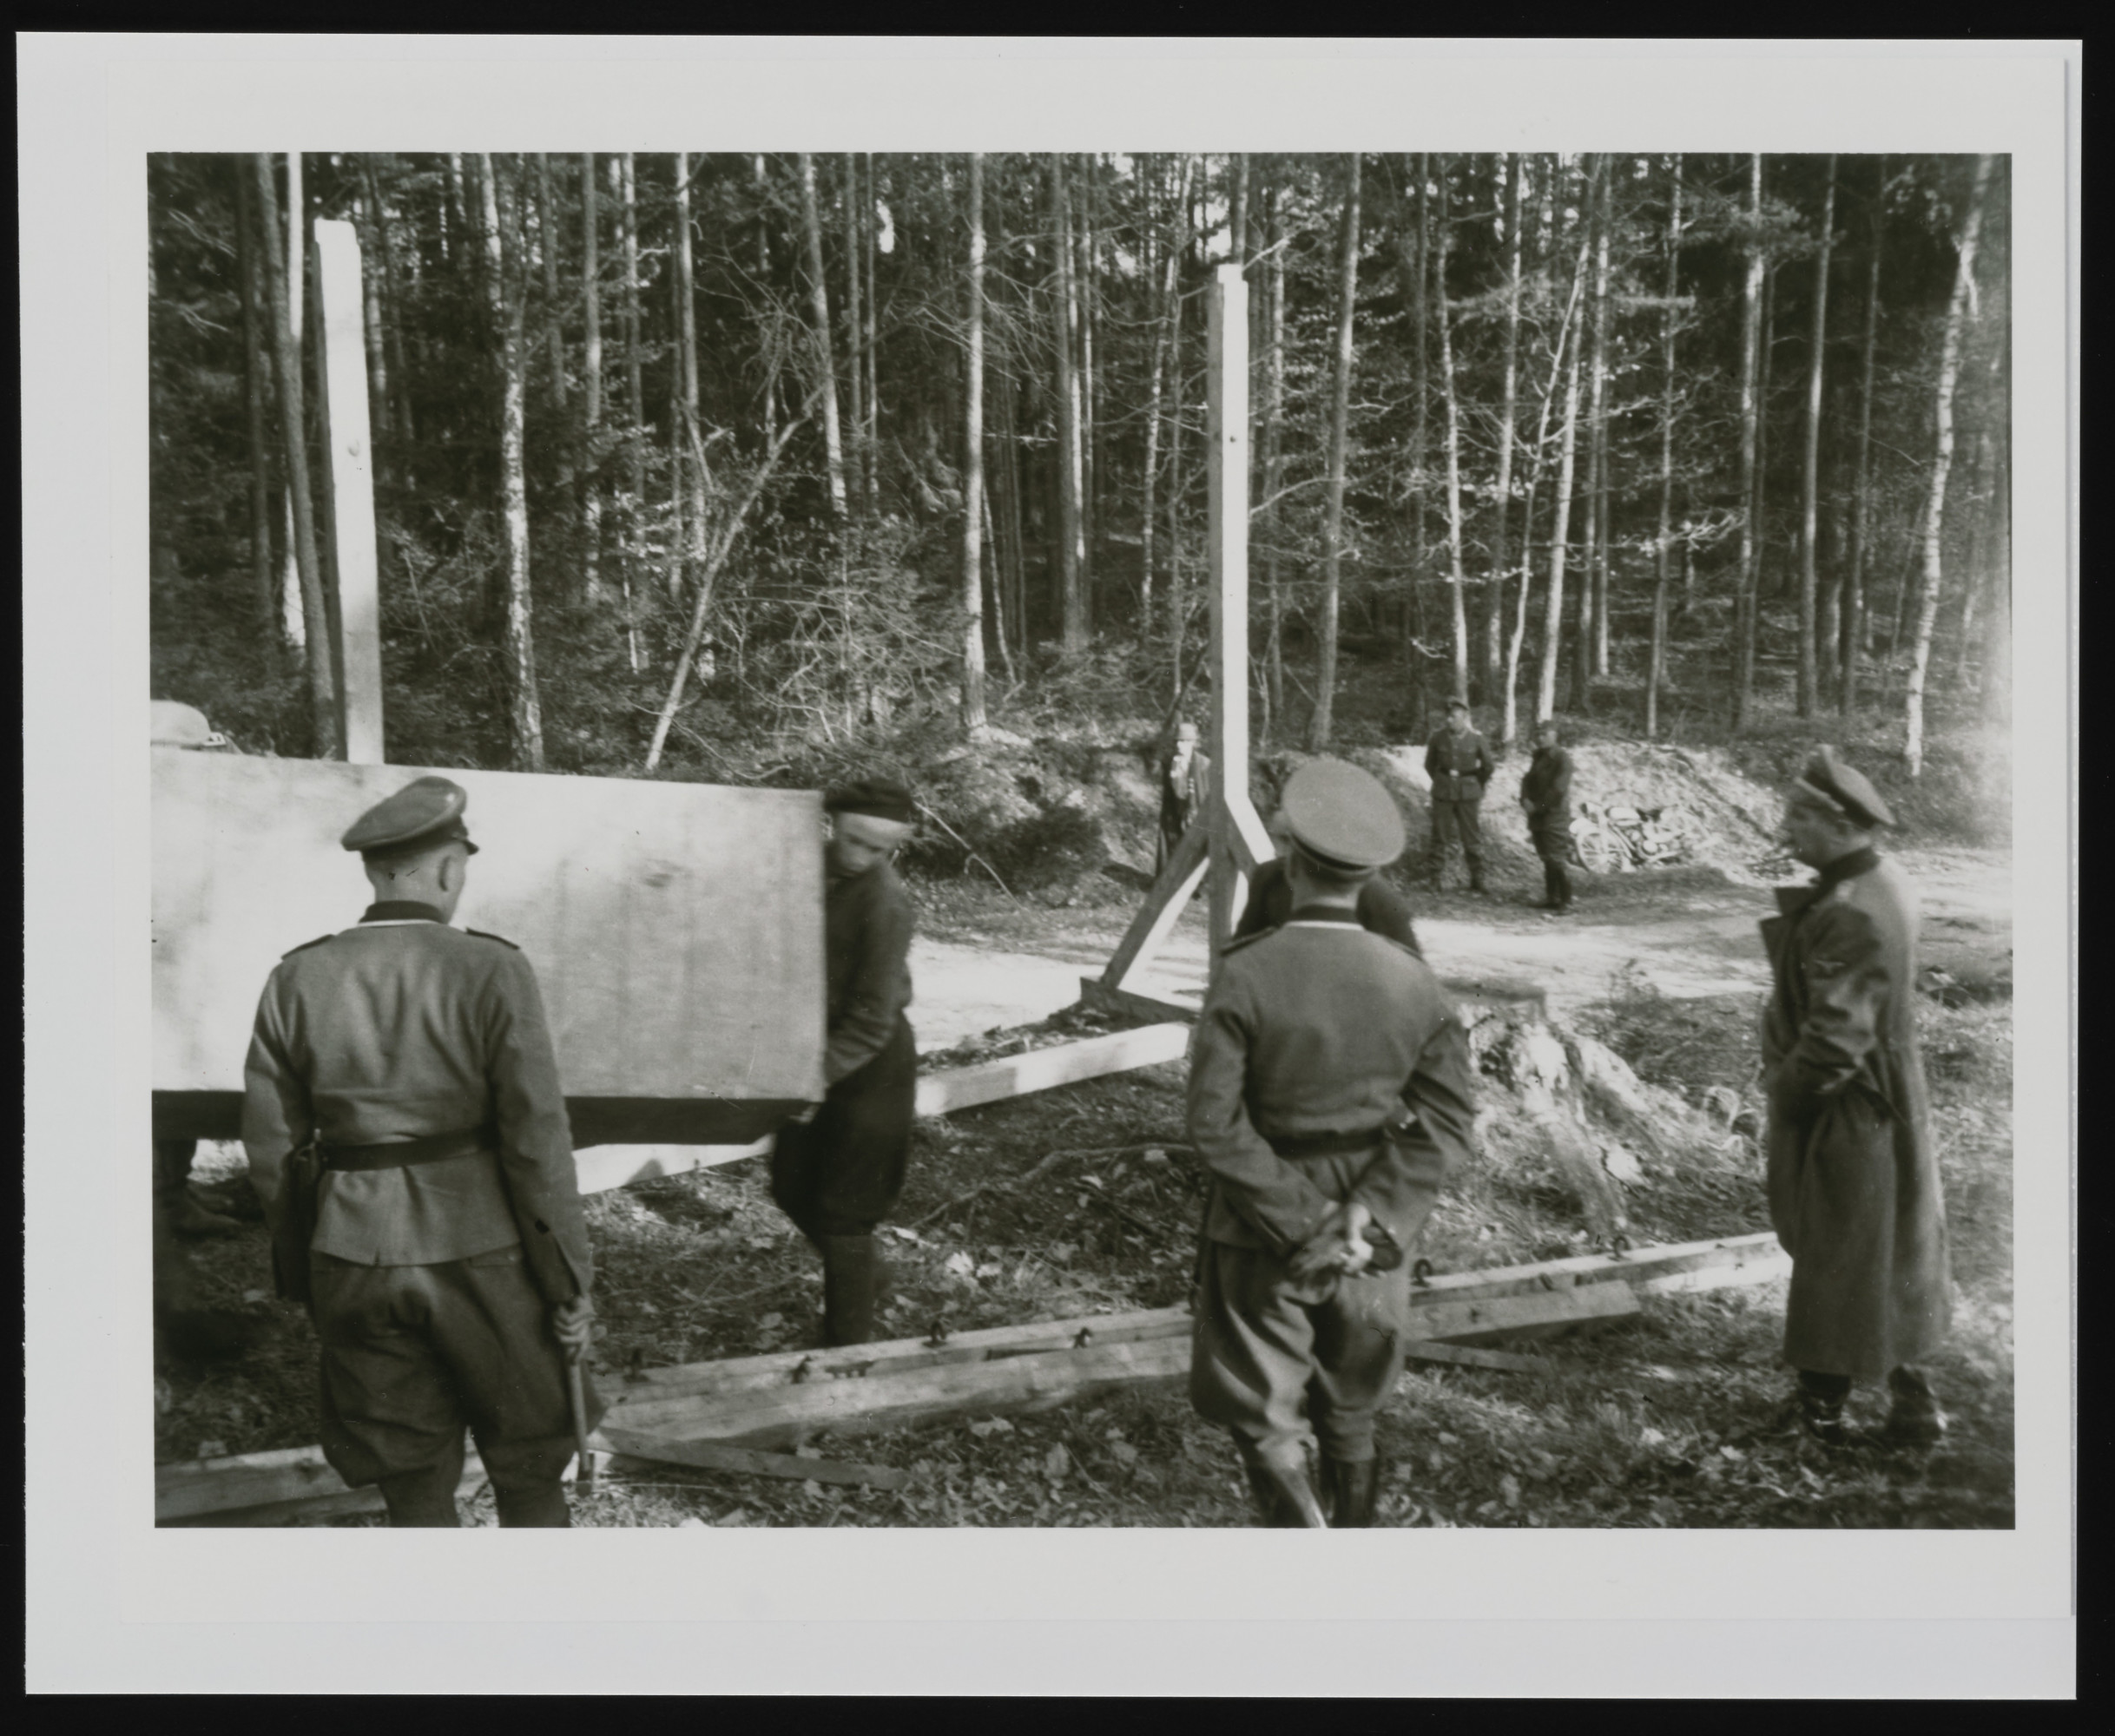 SS officers supervising the building of a gallows in the forest near Buchenwald concentration camp.